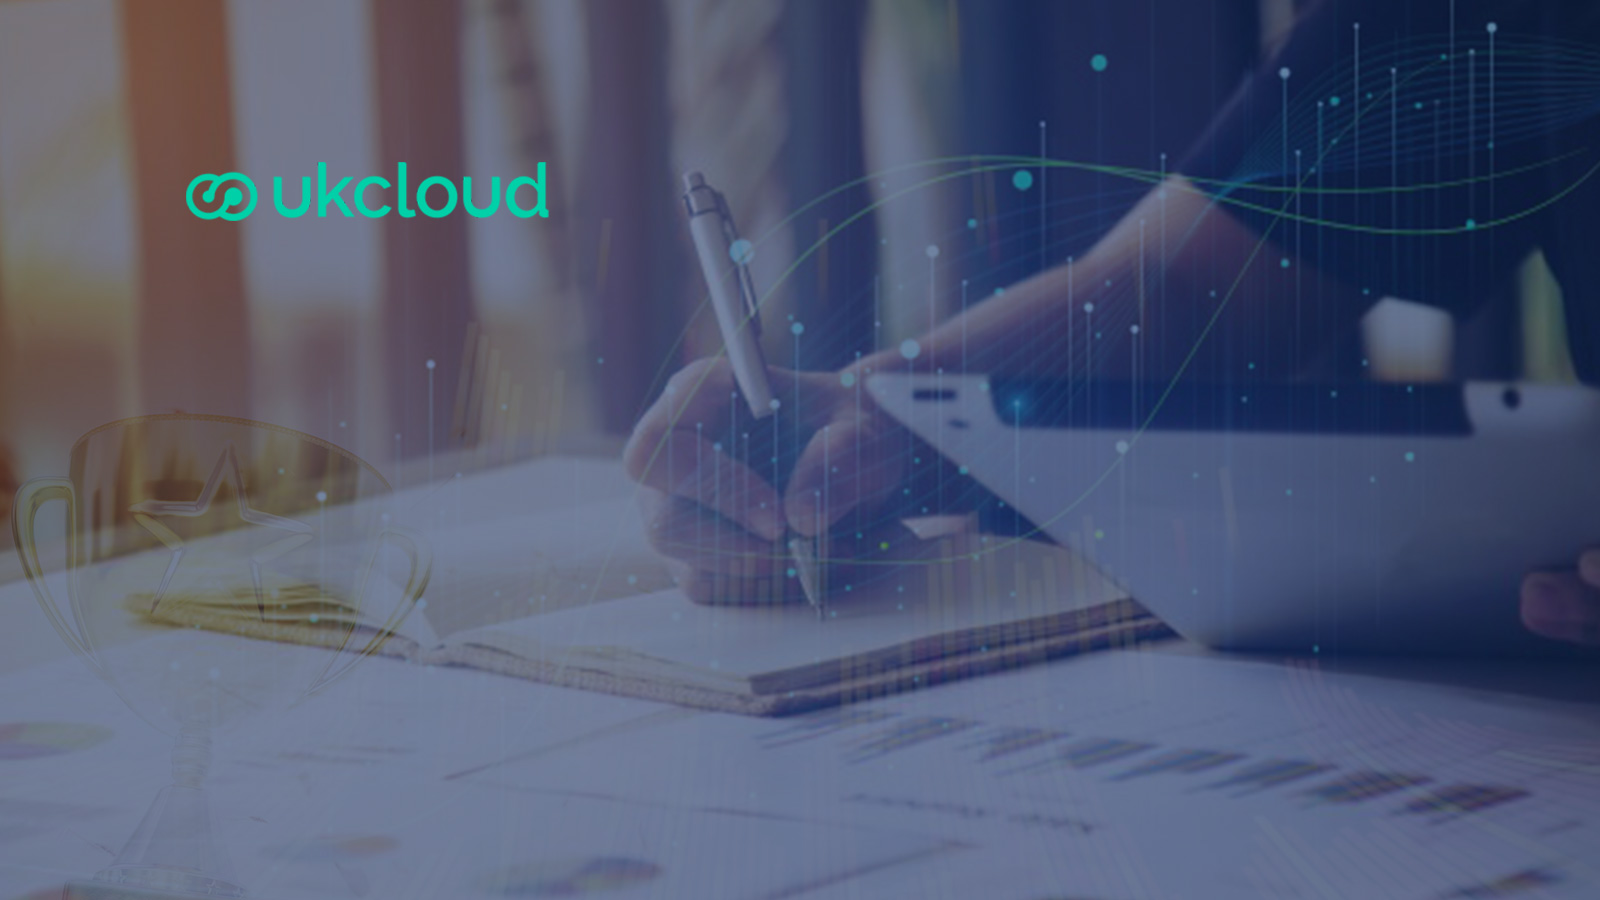 Ukcloud Wins A Coveted Position On The New Big Data And